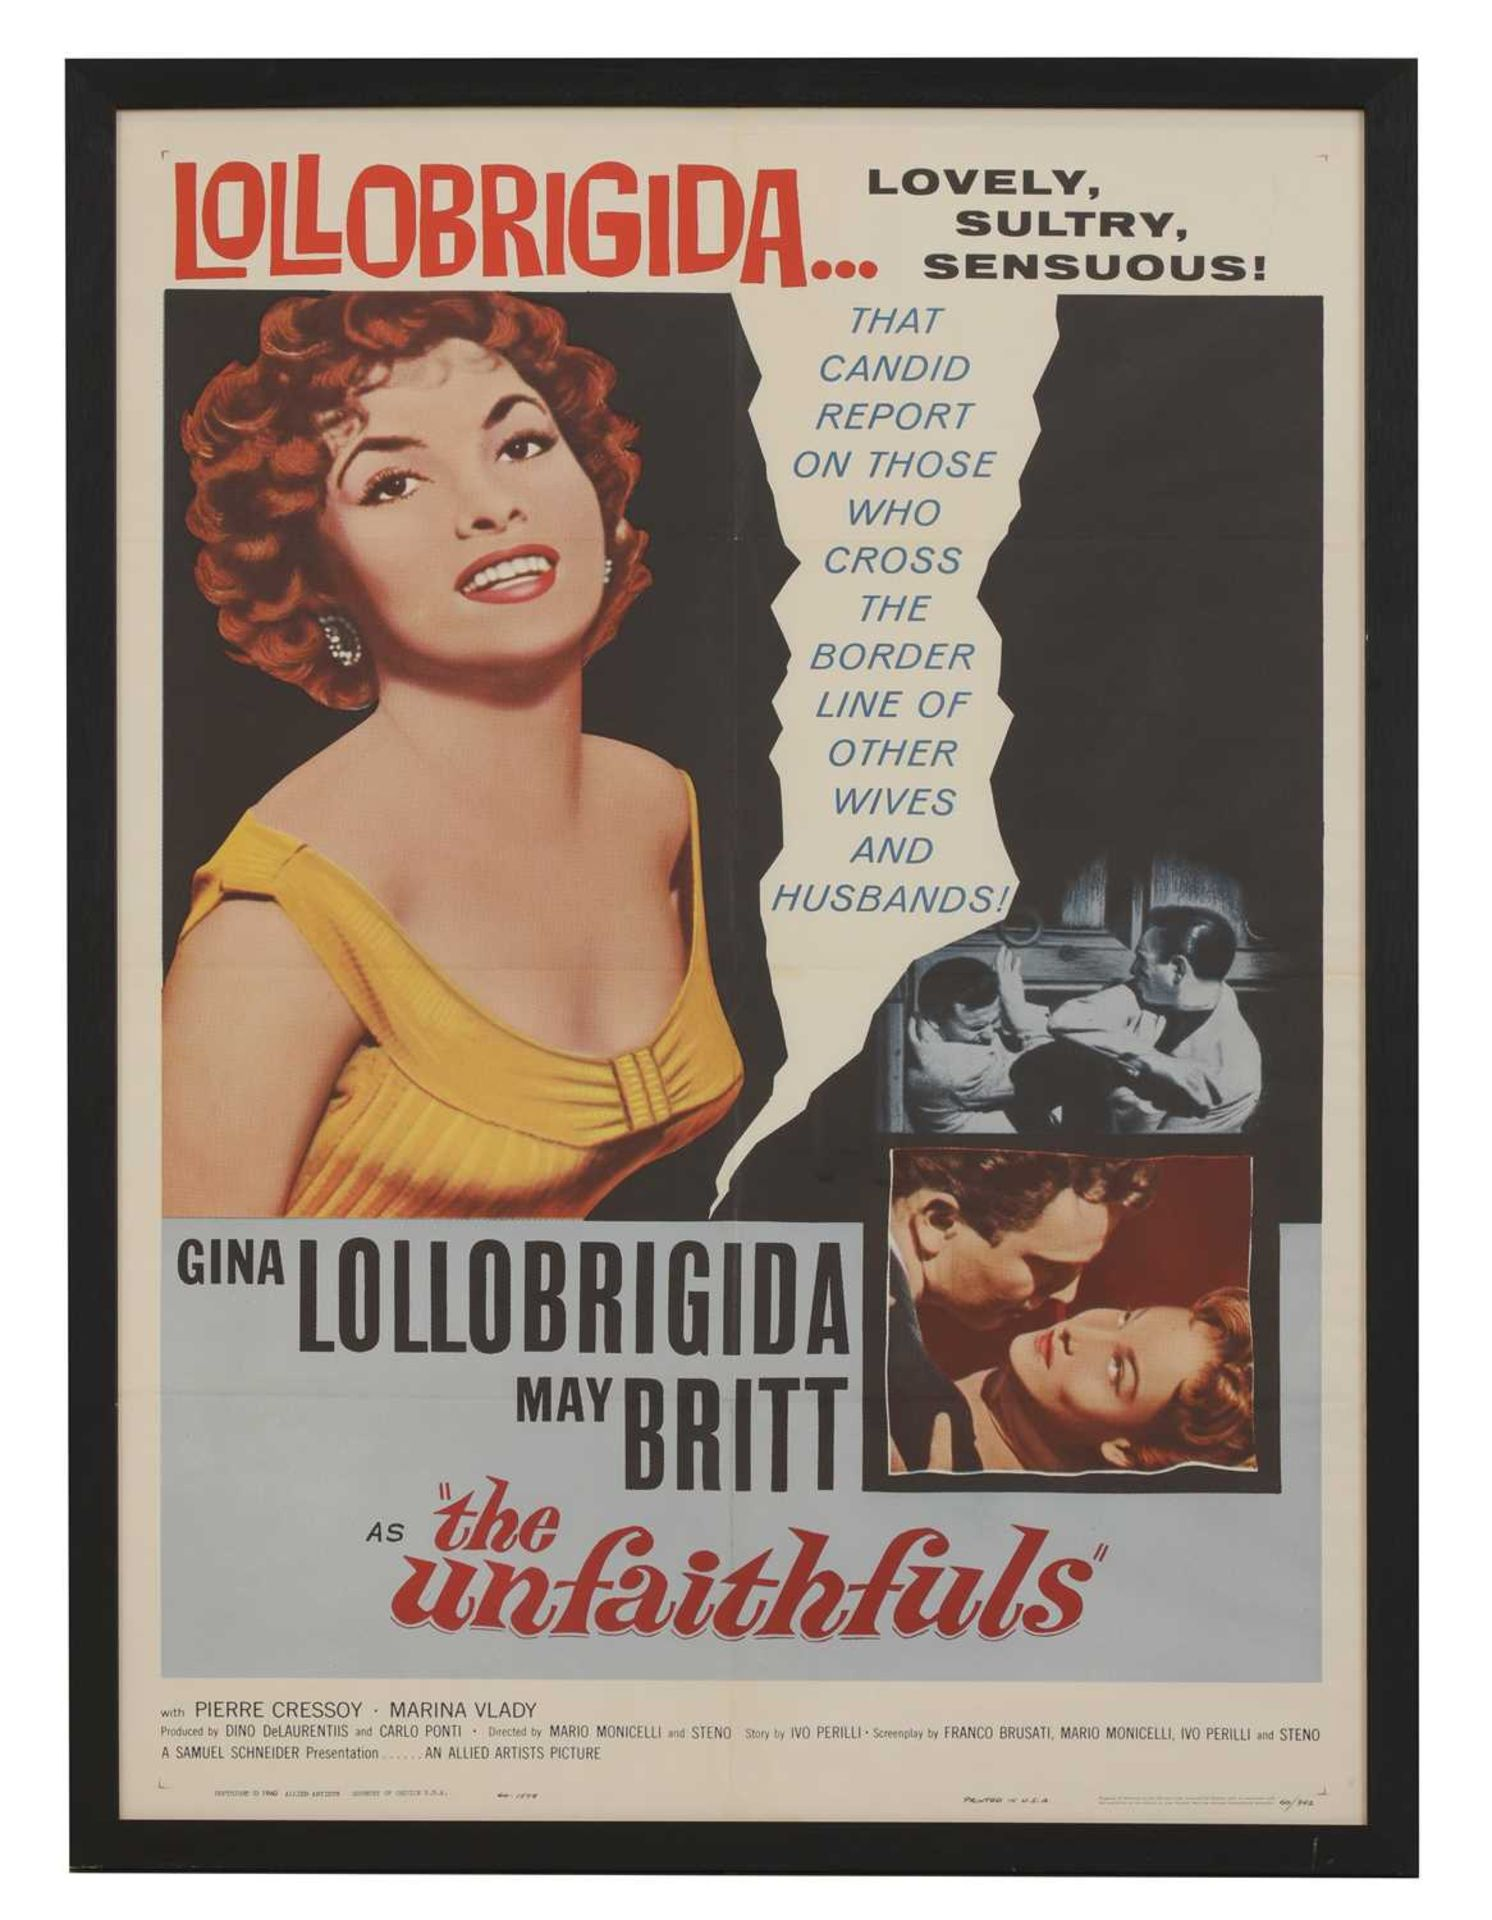 A film poster for 'The Unfaithfuls',